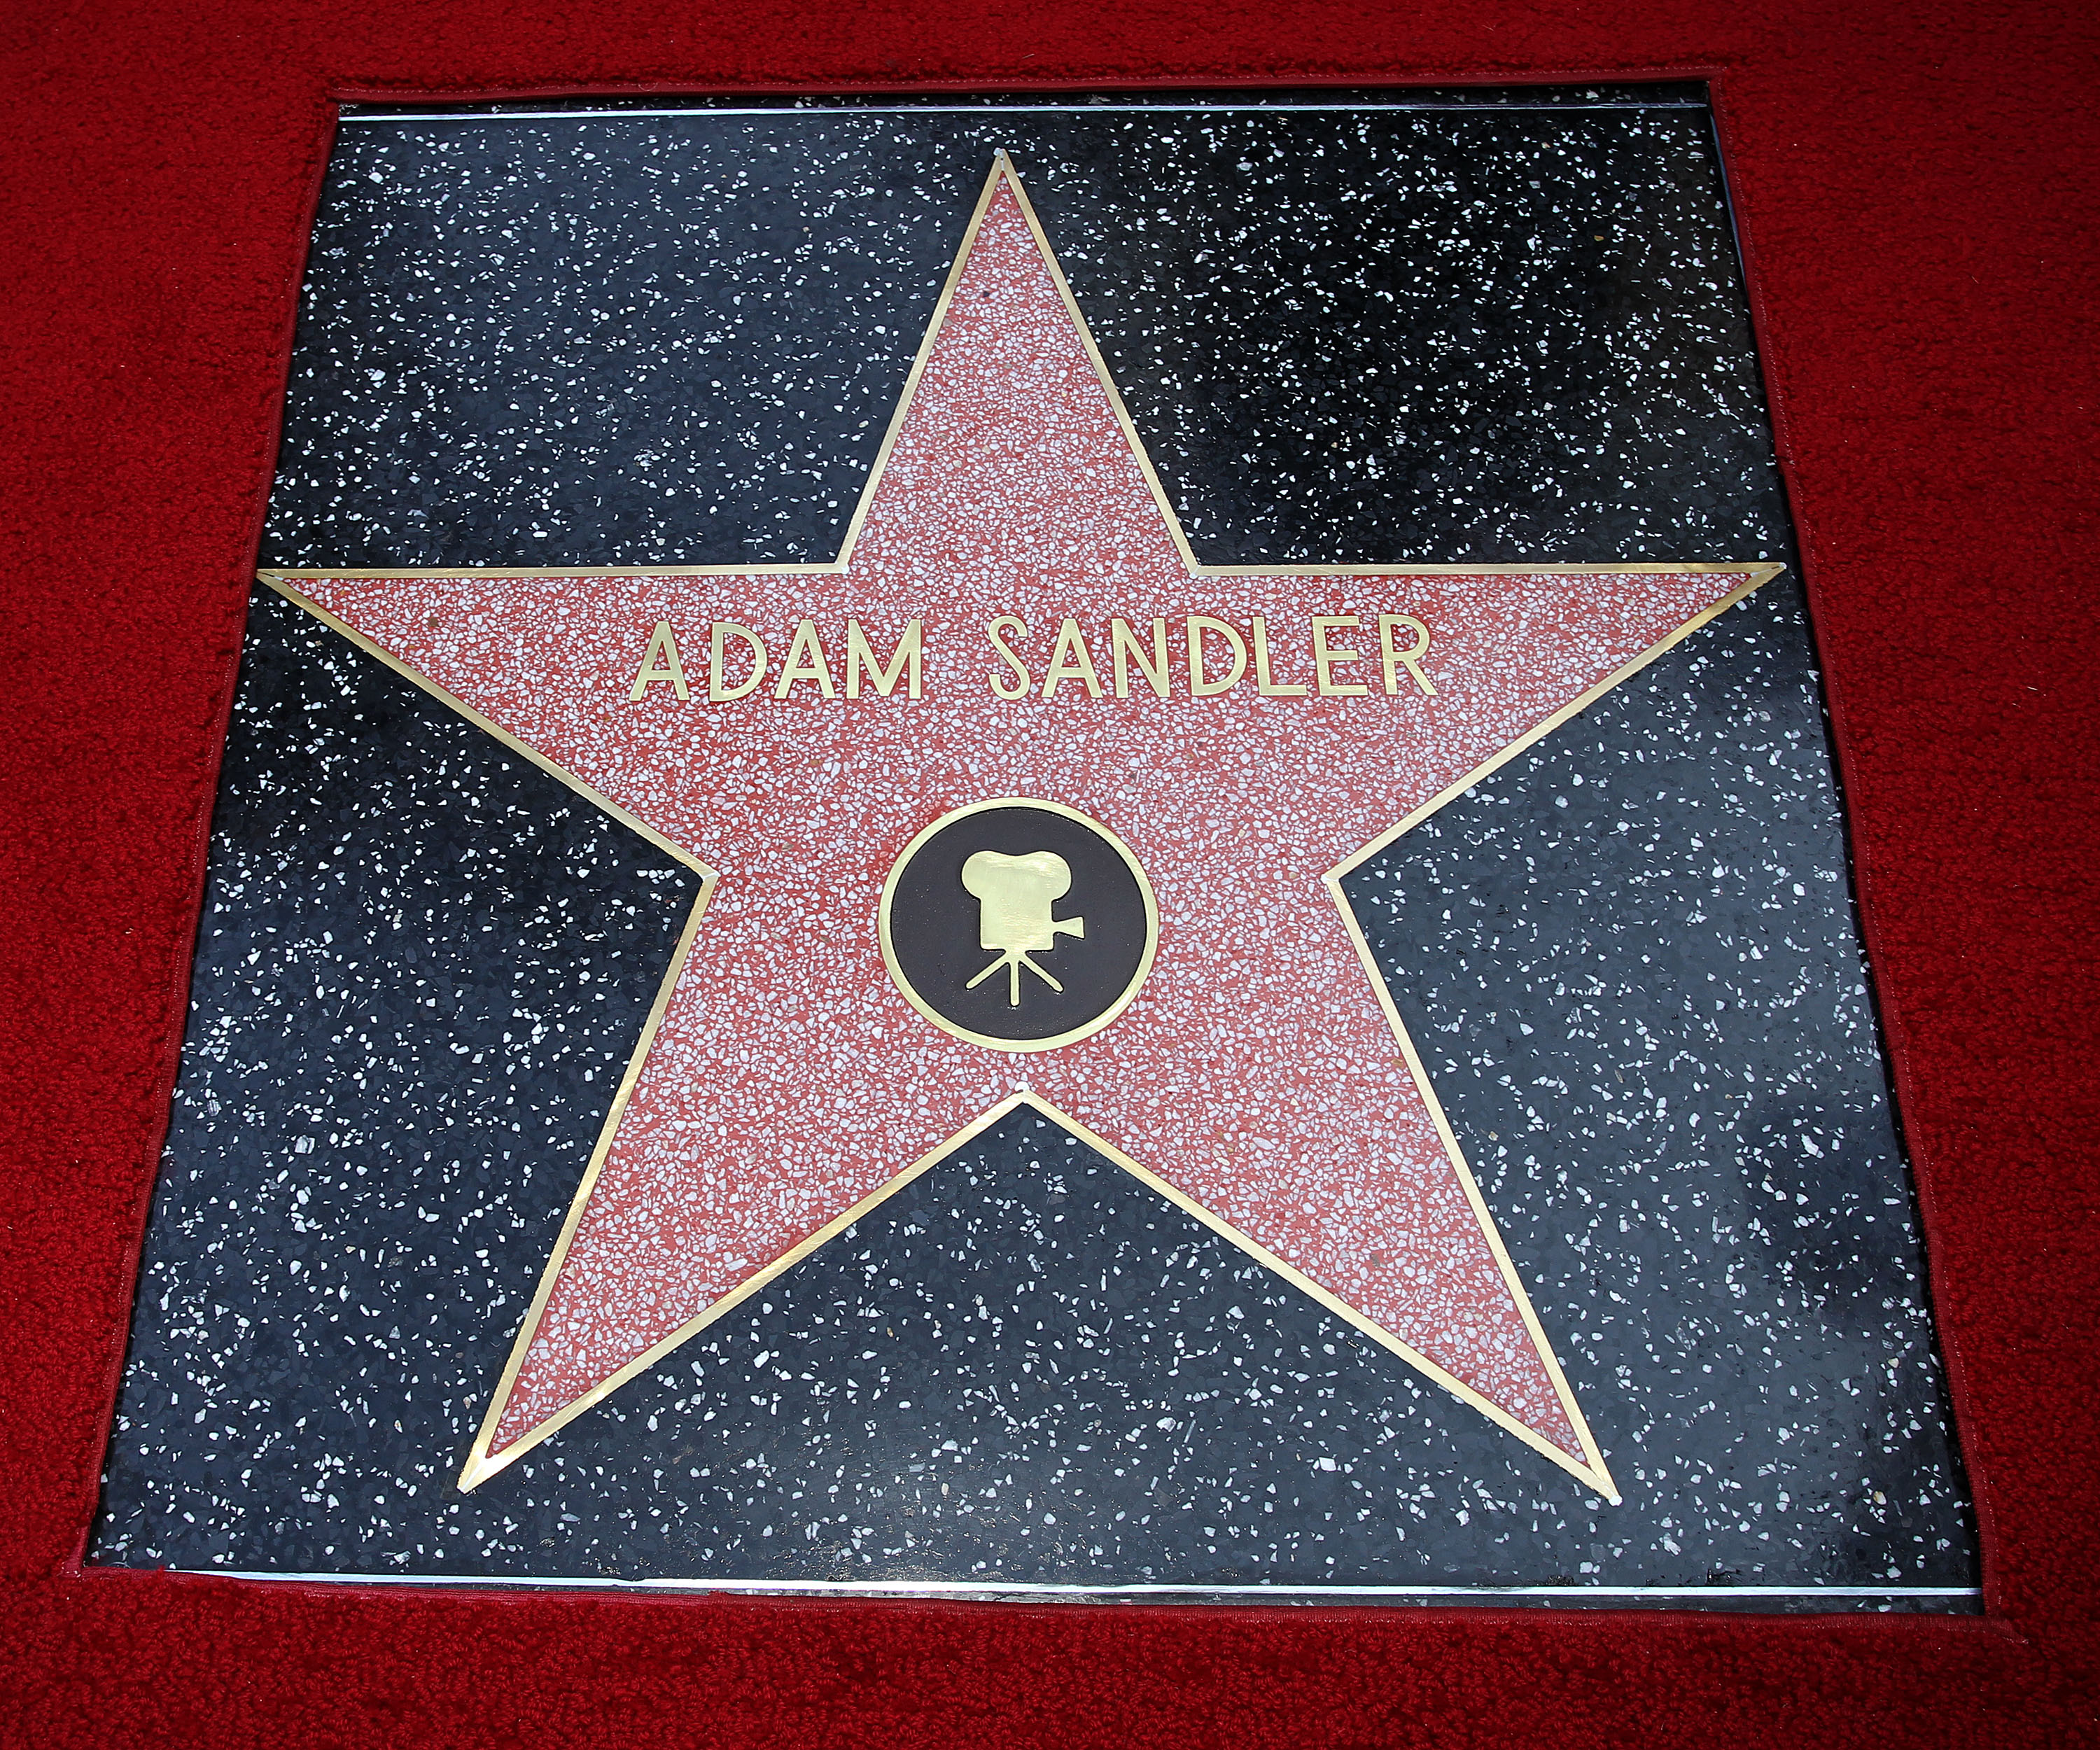 Adam Sandler Facts